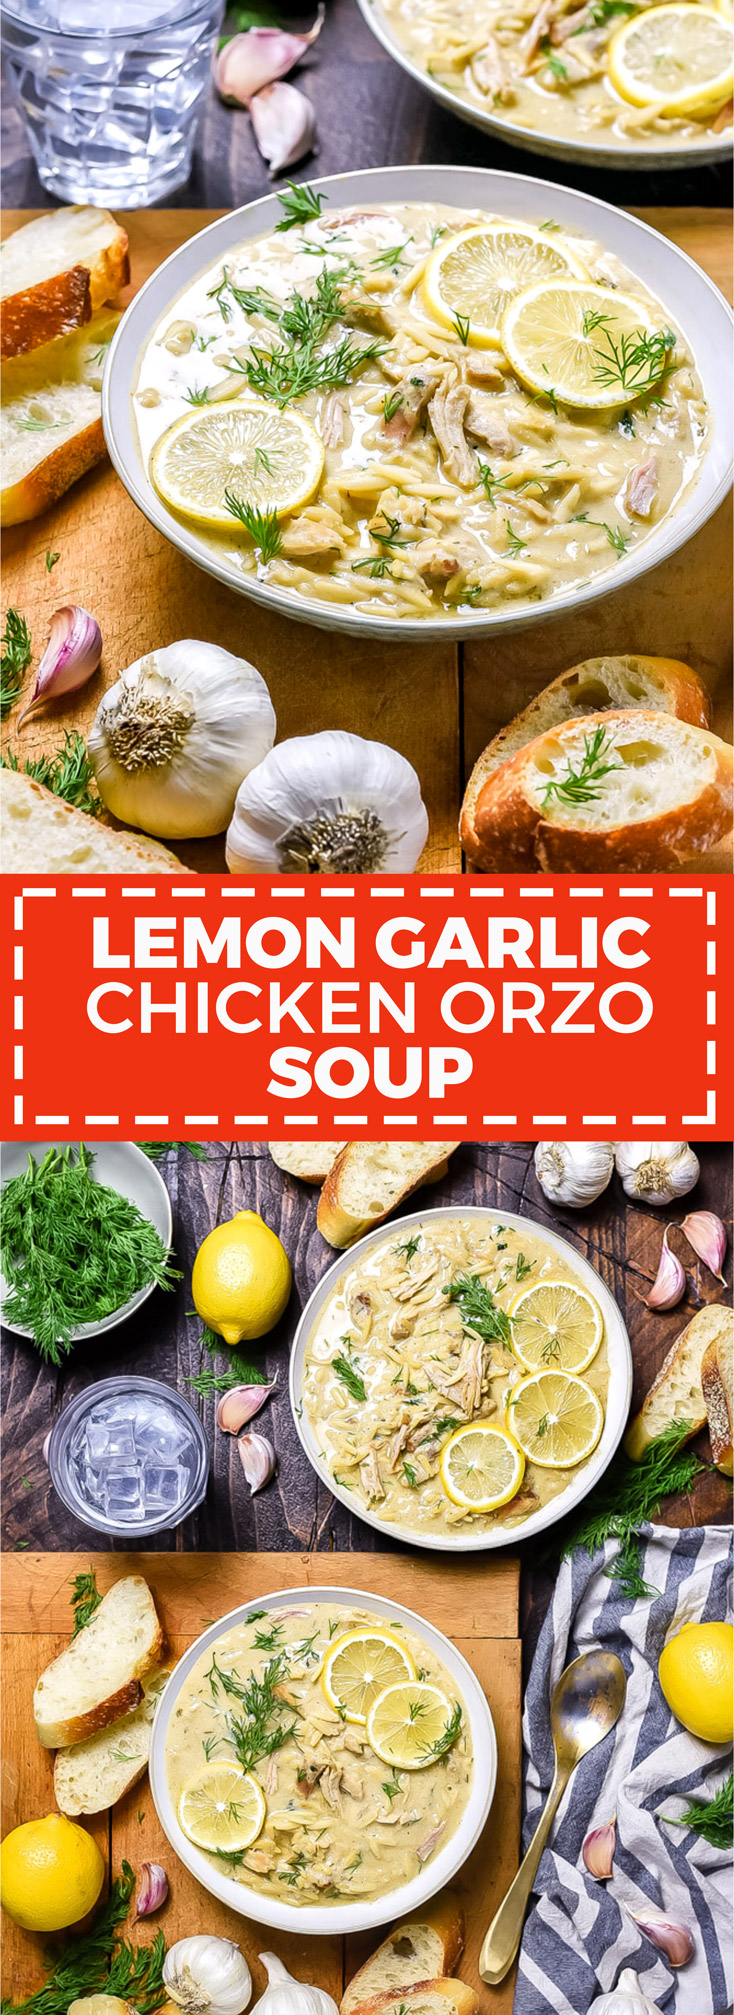 "Lemon Garlic Chicken Orzo Soup. Inspired by Greek ""Avgolemono"", this recipe is thickened with a mixture of lemon juice, pureed garlic, and egg to create a flavor-packed, citrusy, velvety soup. 